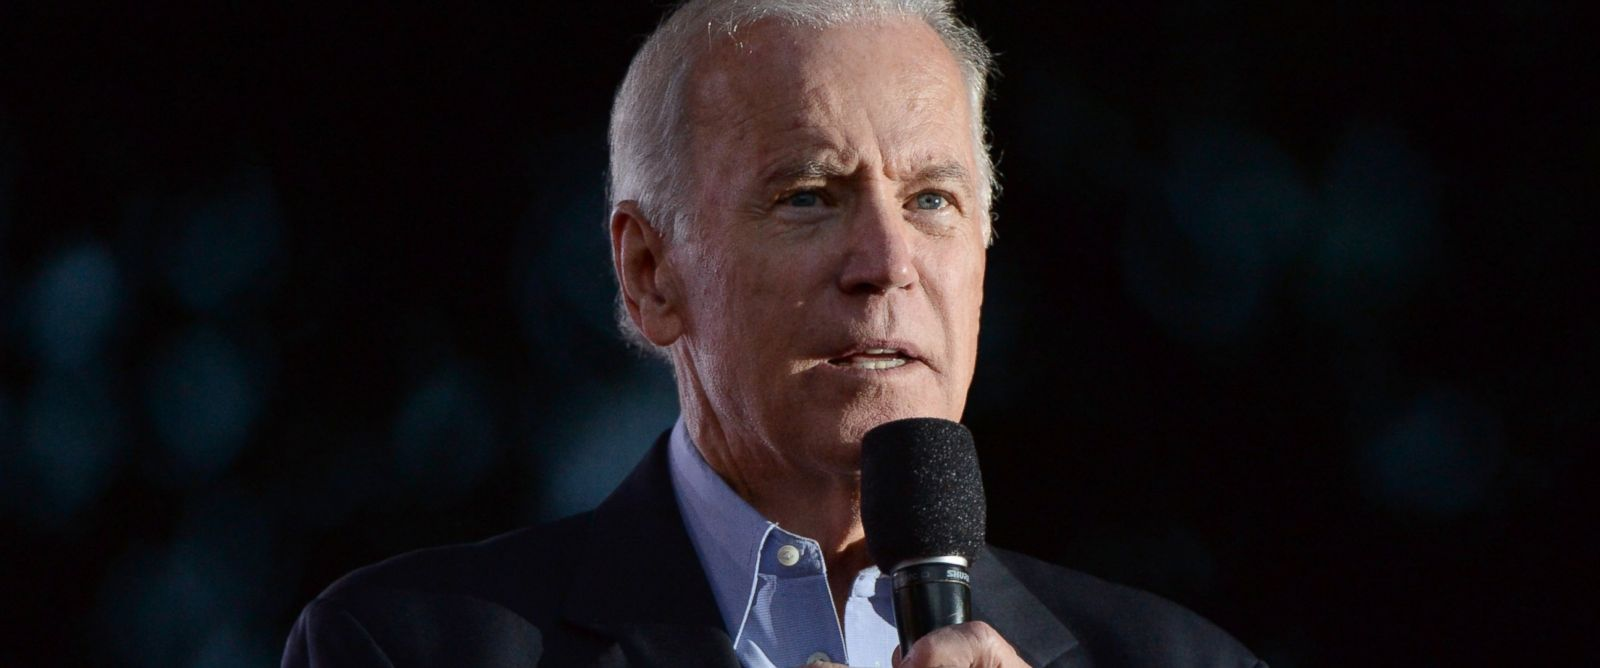 PHOTO: Joe Biden attends the 2015 Global Citizen Festival in Central Park on Sept. 26, 2015 in New York City.